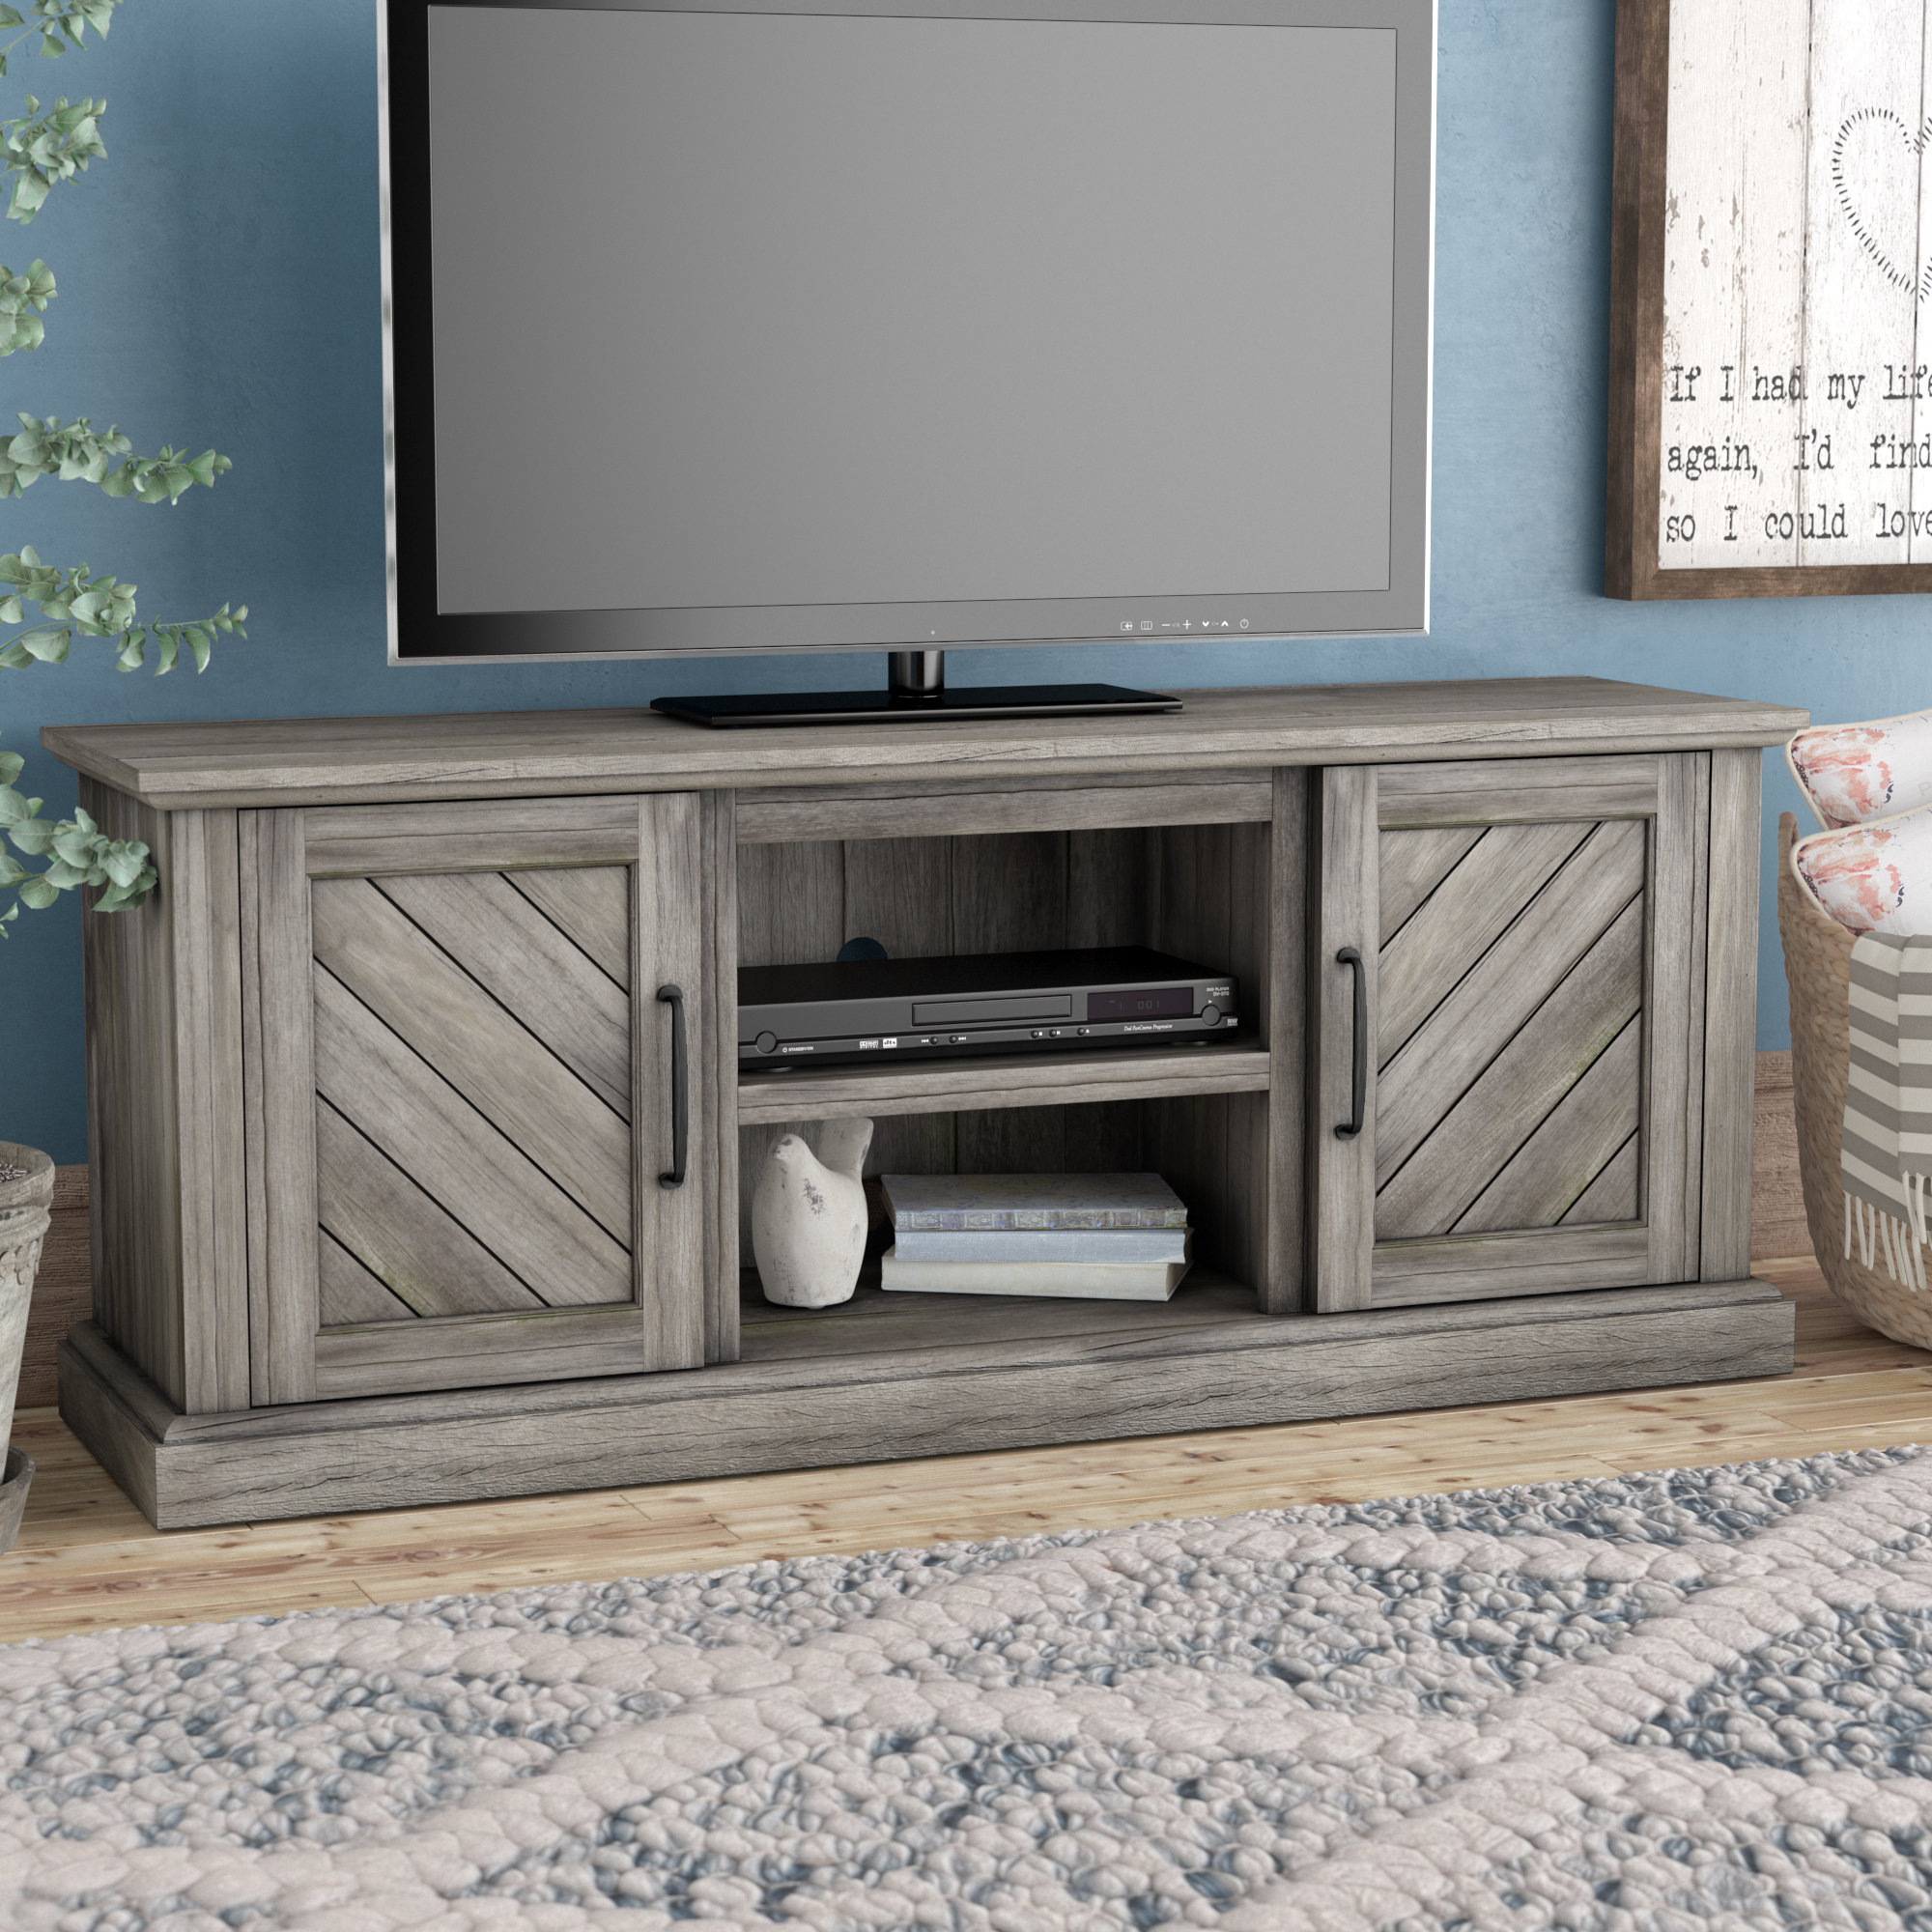 Fireplace Tv Stands & Entertainment Centers You'll Love | Wayfair within Wyatt 68 Inch Tv Stands (Image 7 of 30)